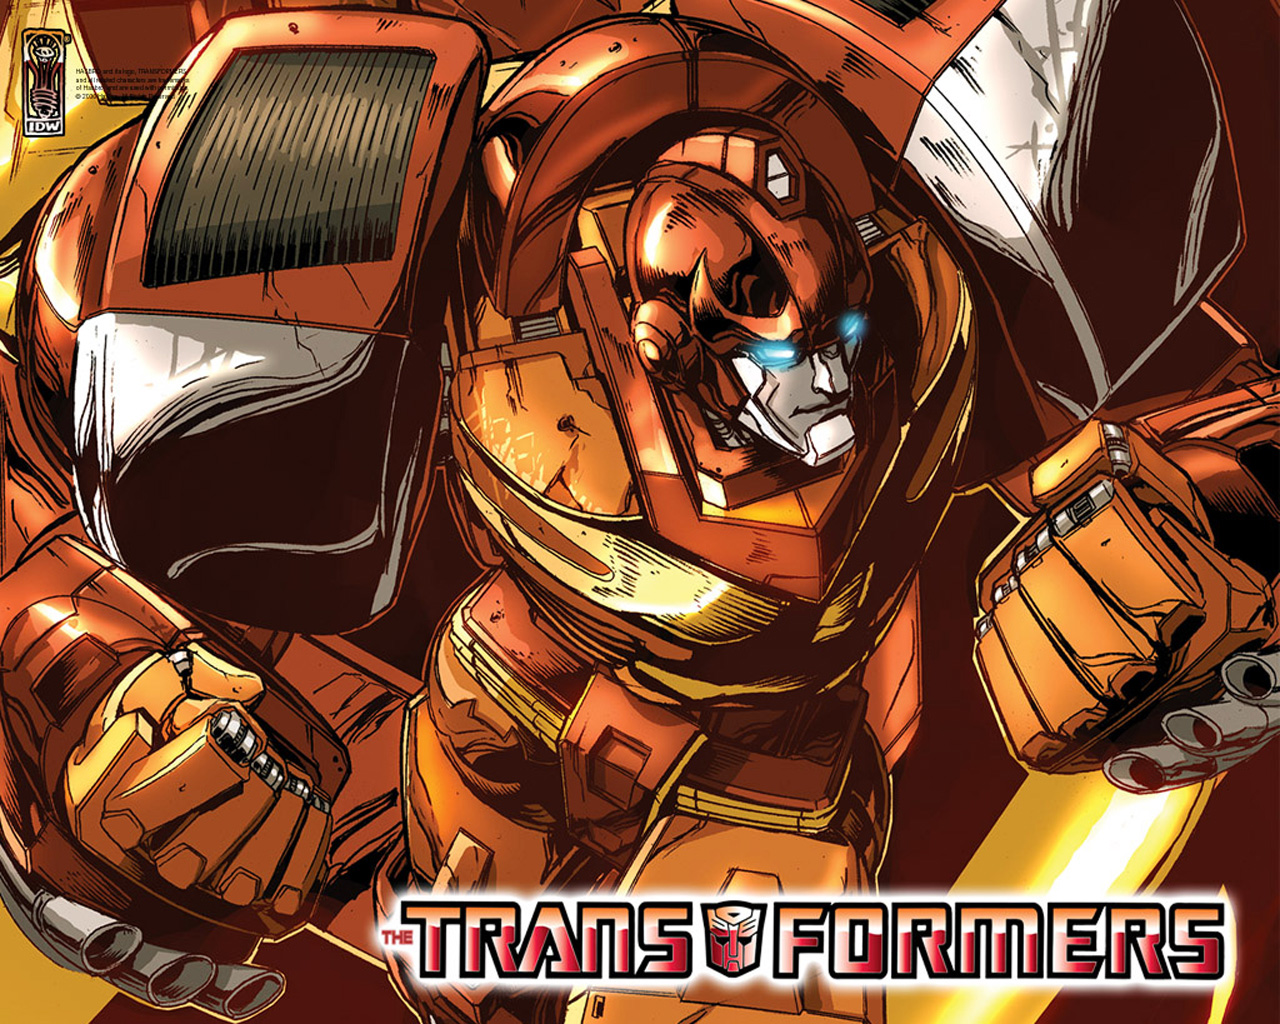 G1 Autobots Wallpaper Gallery 2 1280 X 960 Pixels